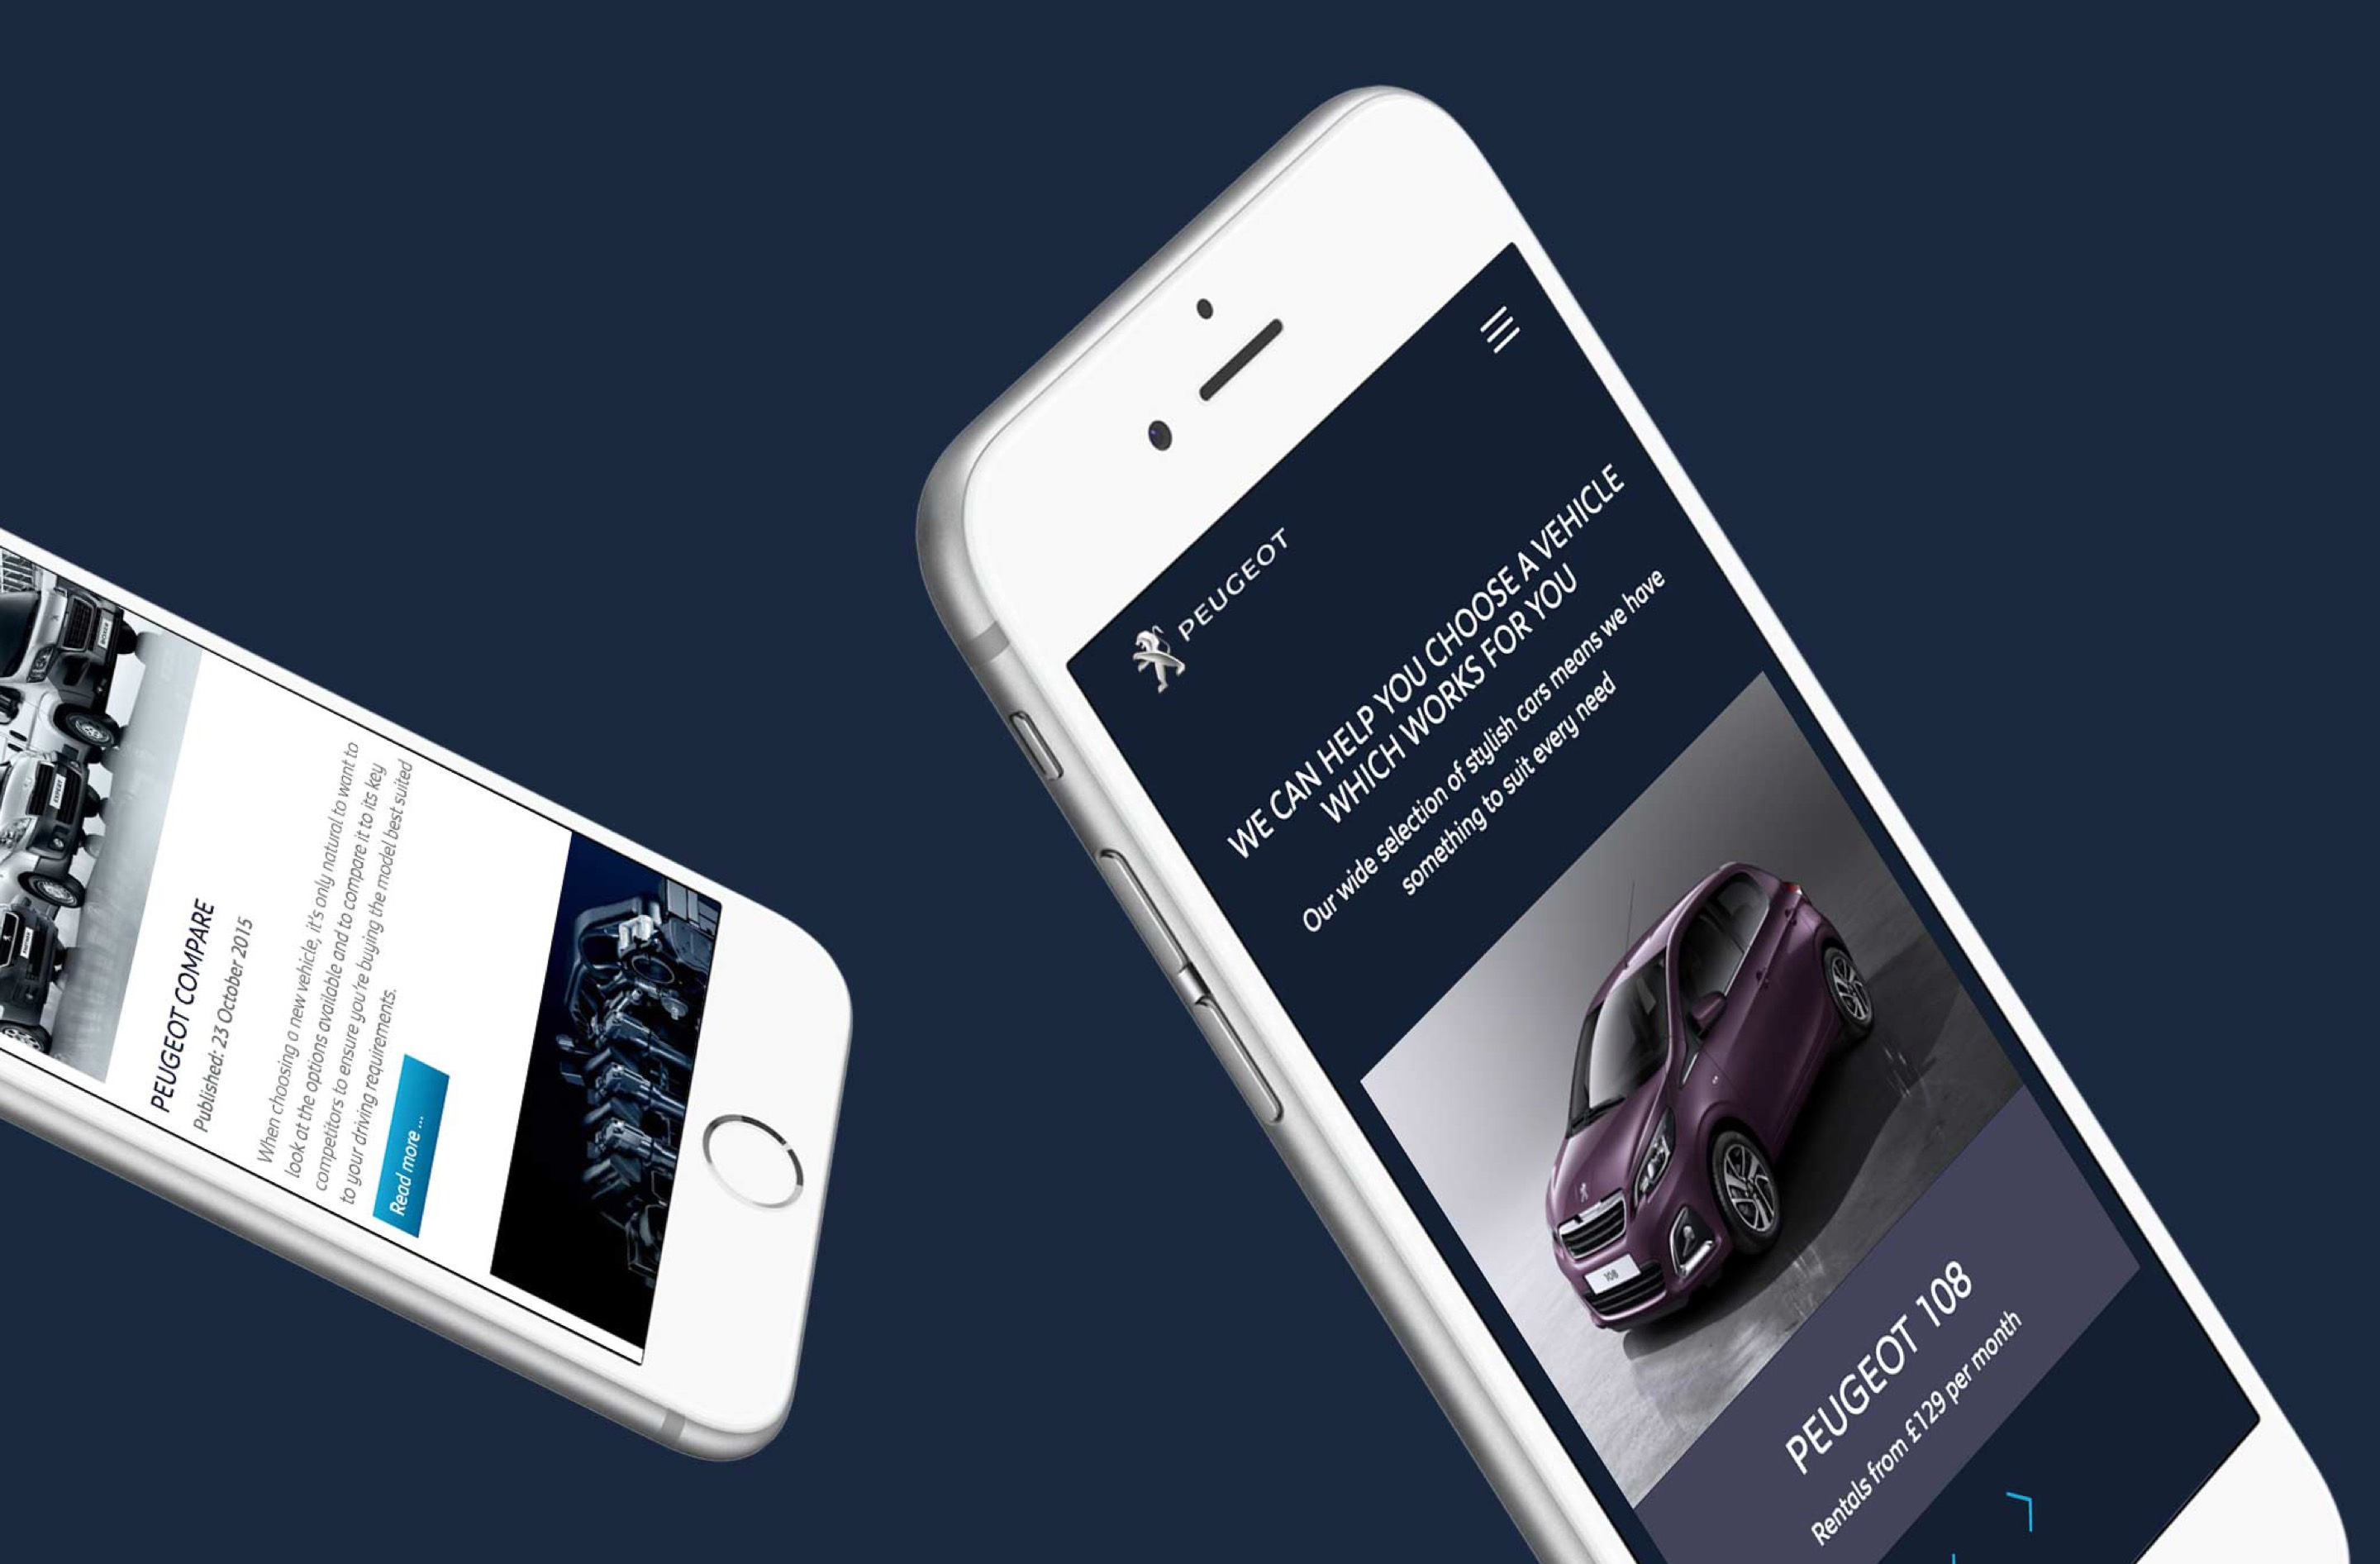 Creating a mobile-first website design for Peugeot